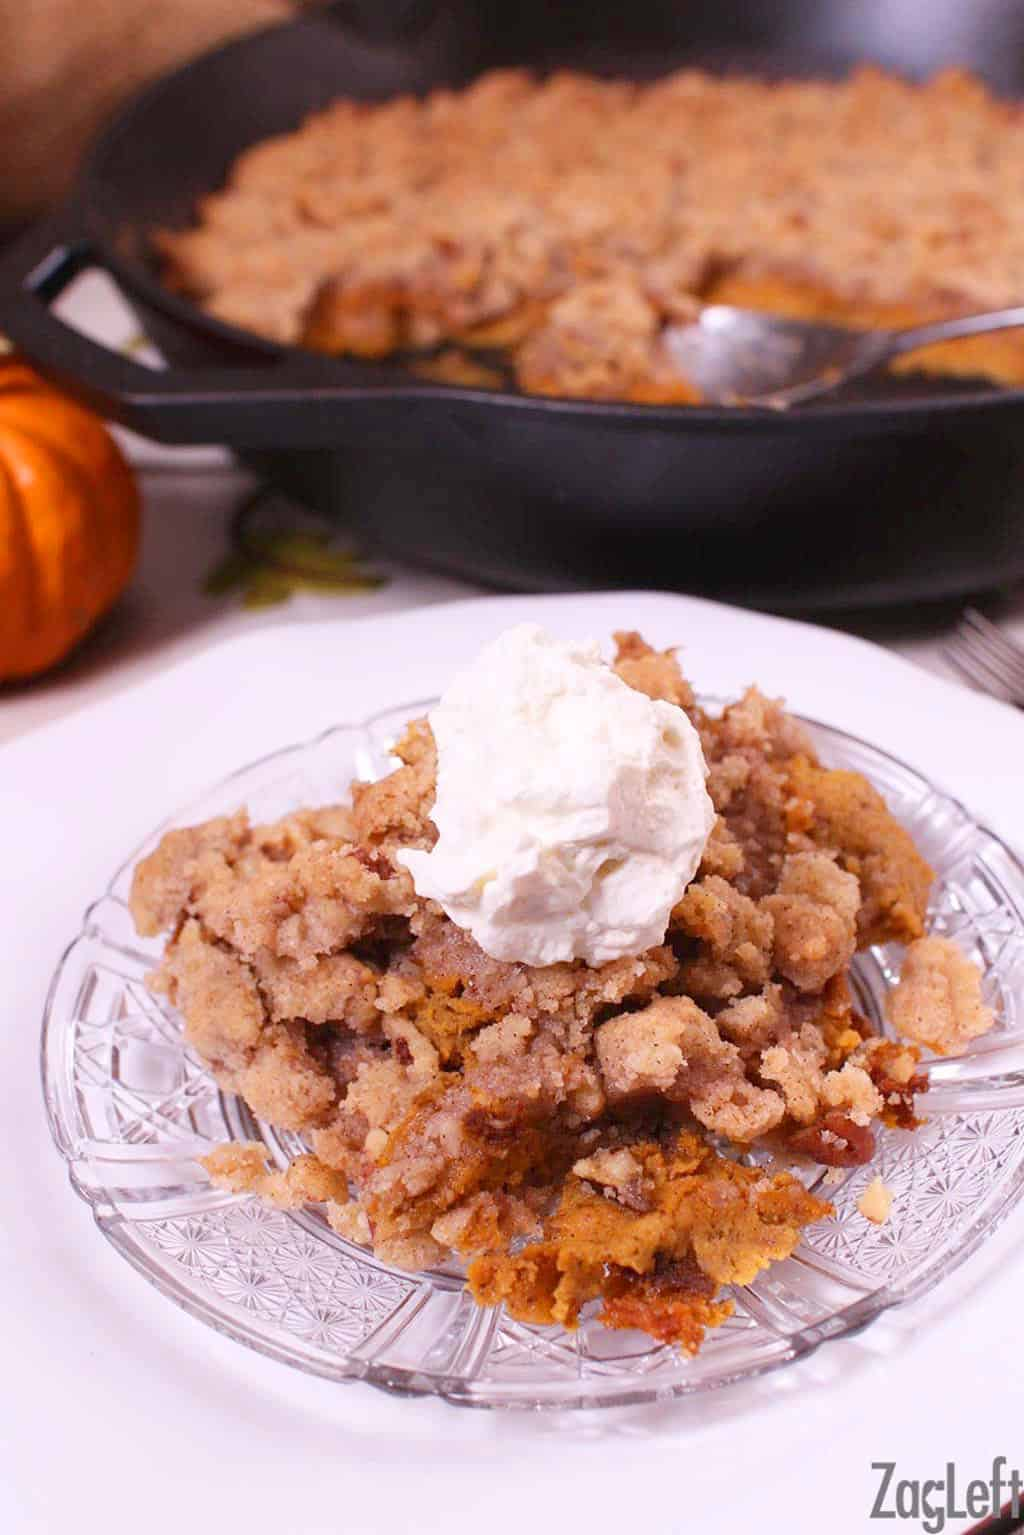 A slice of Crustless Pumpkin Pie with streusel topping and whipped cream on a small plate next to a cast iron skillet with the remainder of the pie